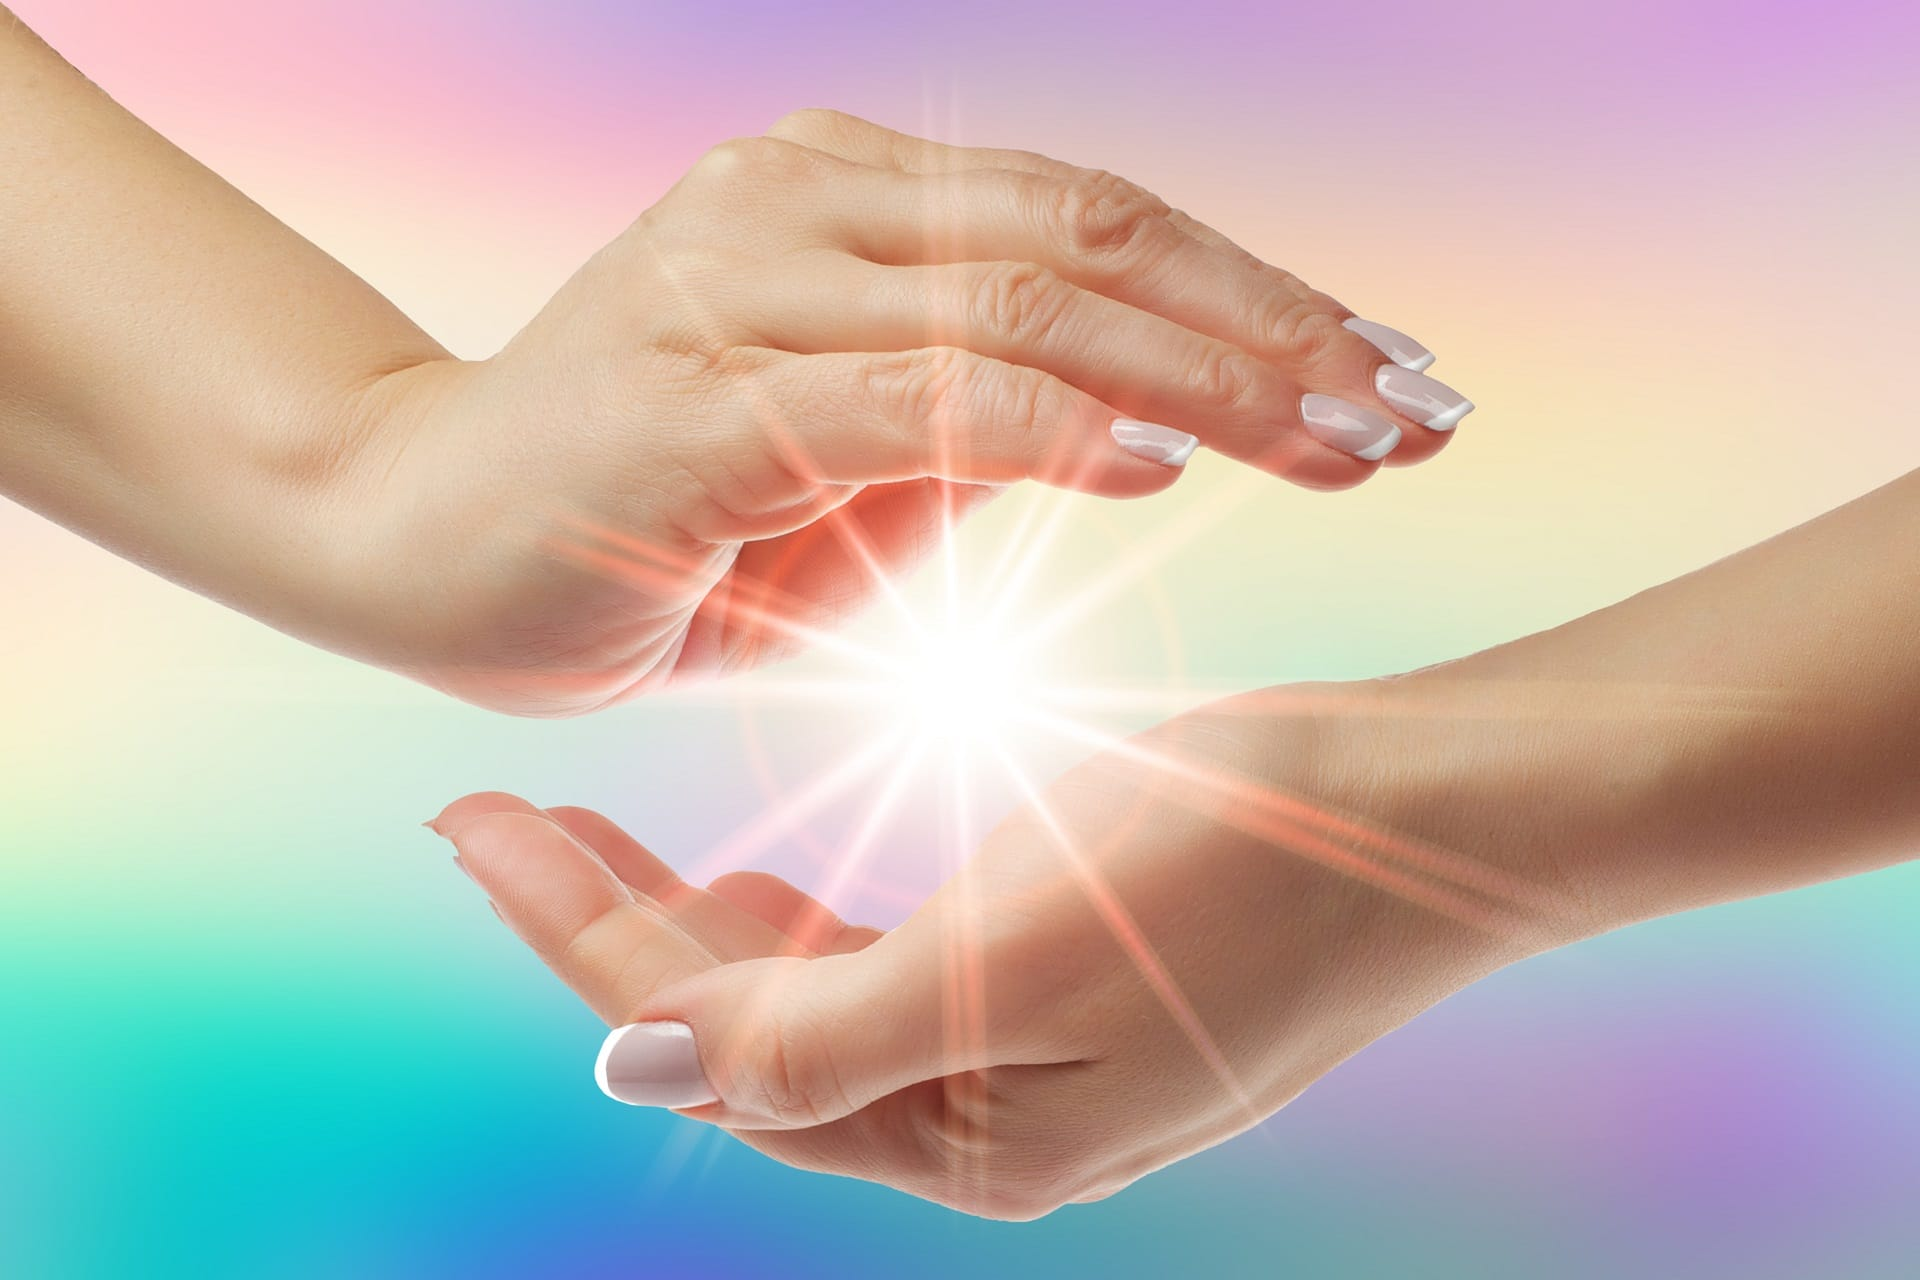 Women healing hands with bright sunburst on rainbow background